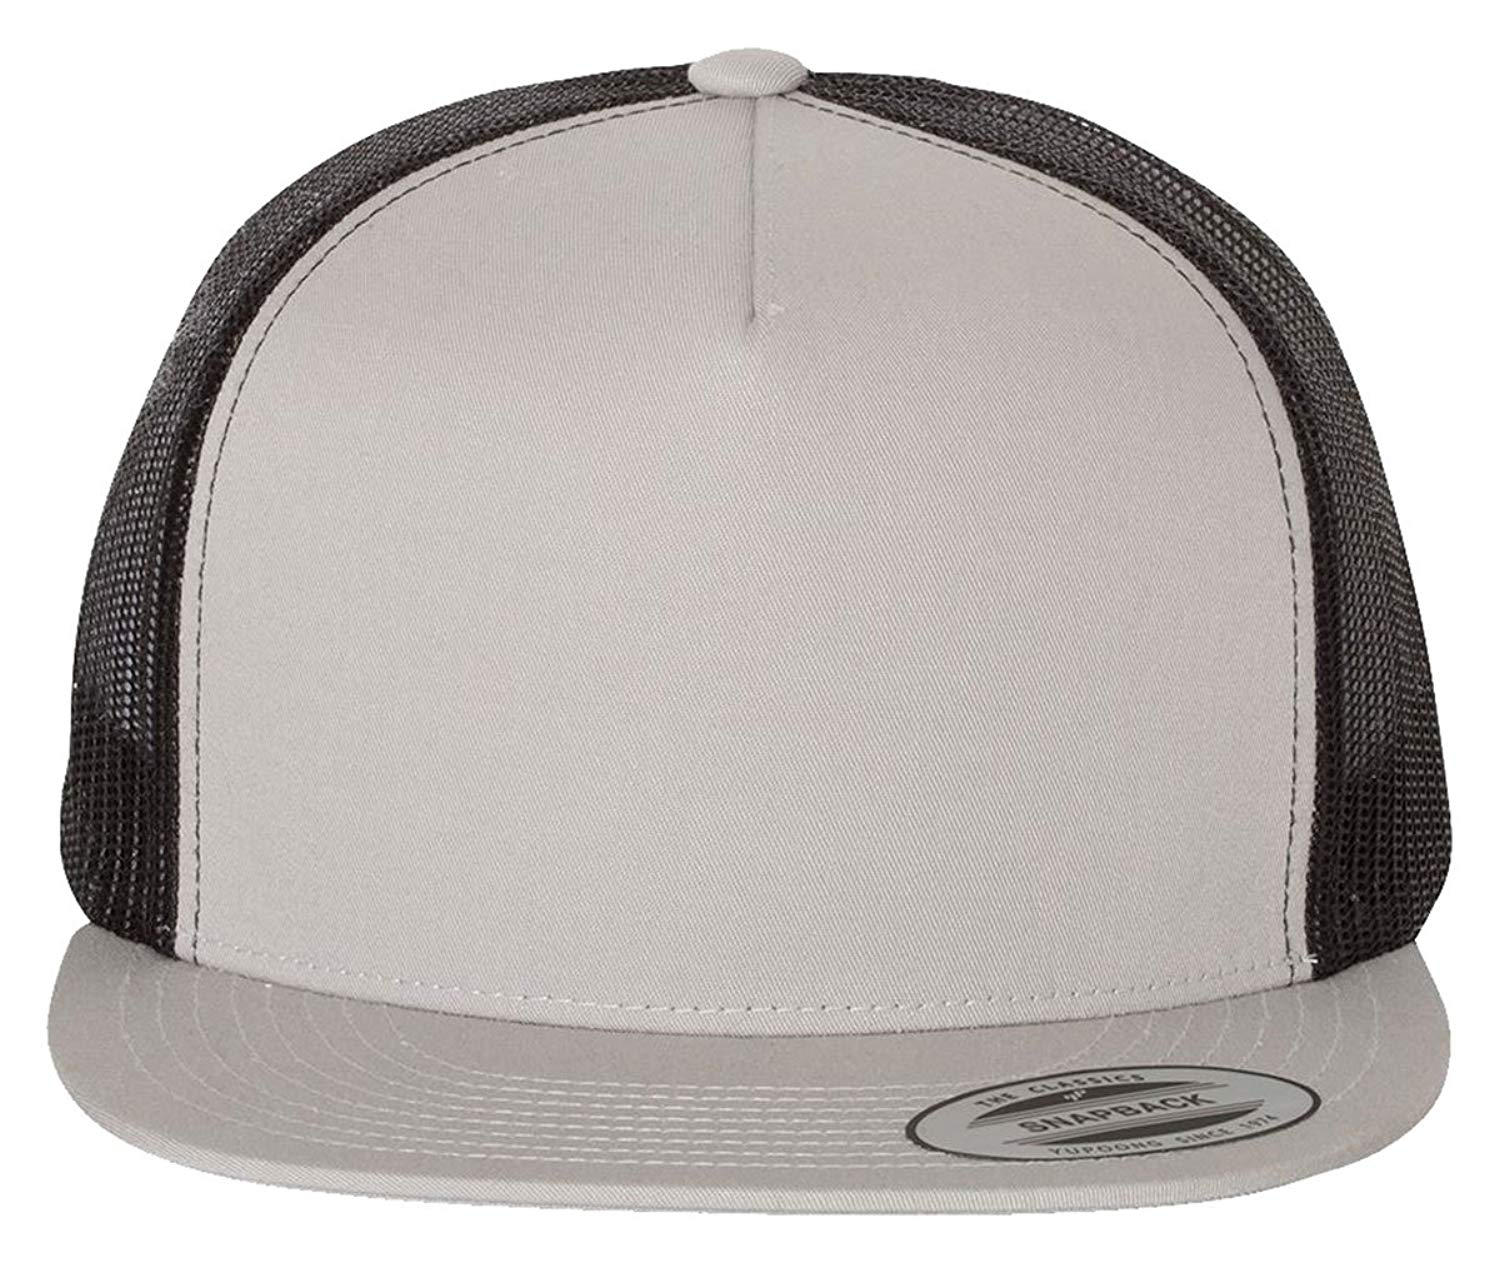 adf3cfb4e16 Buy Classic Trucker Snapback Hat Yupoong 6006   2-Tone in Cheap ...